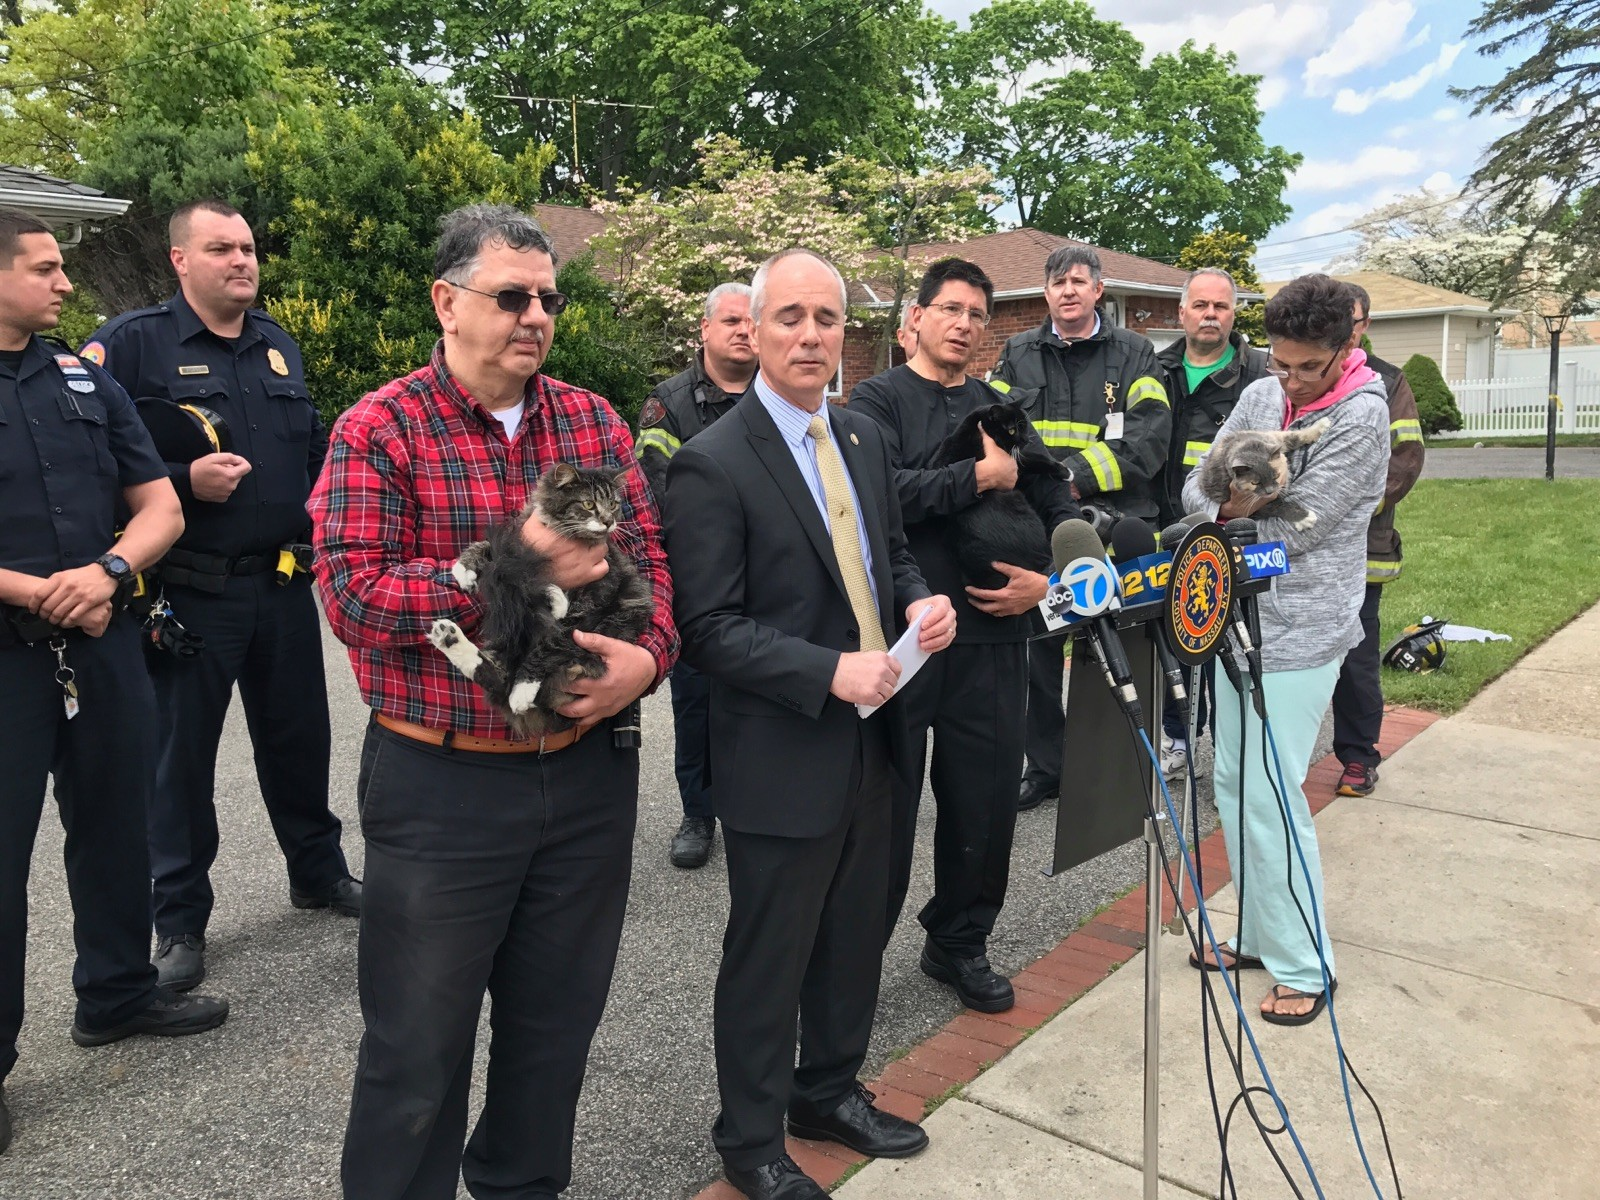 North Merrick neighbor, and member of the County Firemen's Association, John Scalesi, with cat, assisted with the rescue of several animals at the fire scene and joined members of the police and fire department at a press conference after.